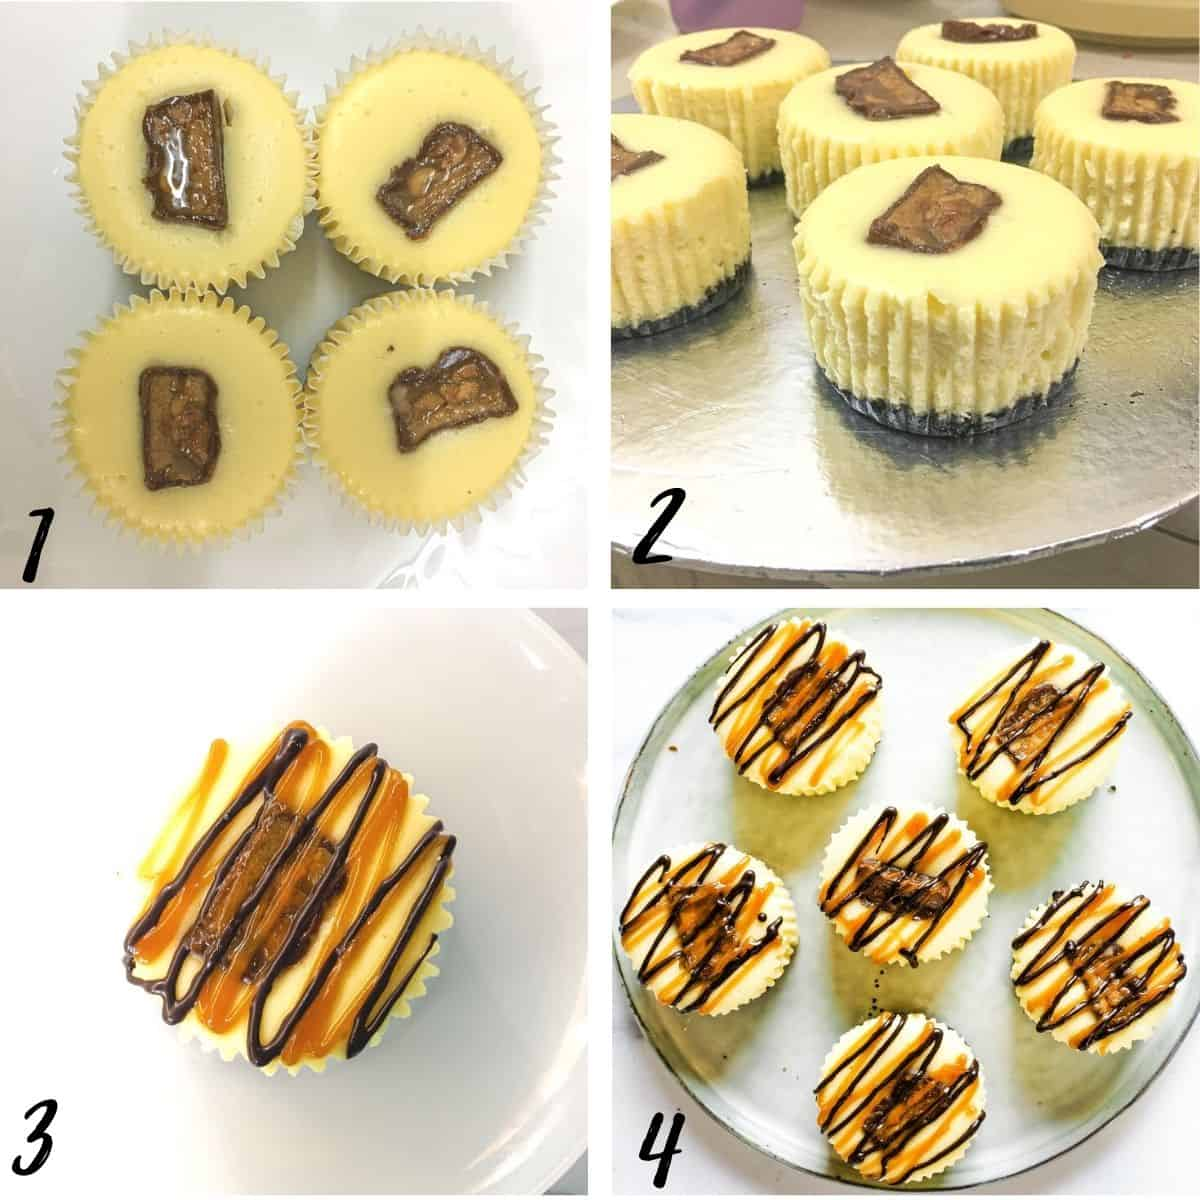 A poster of 4 images showing how to assemble mini Snickers cheesecake